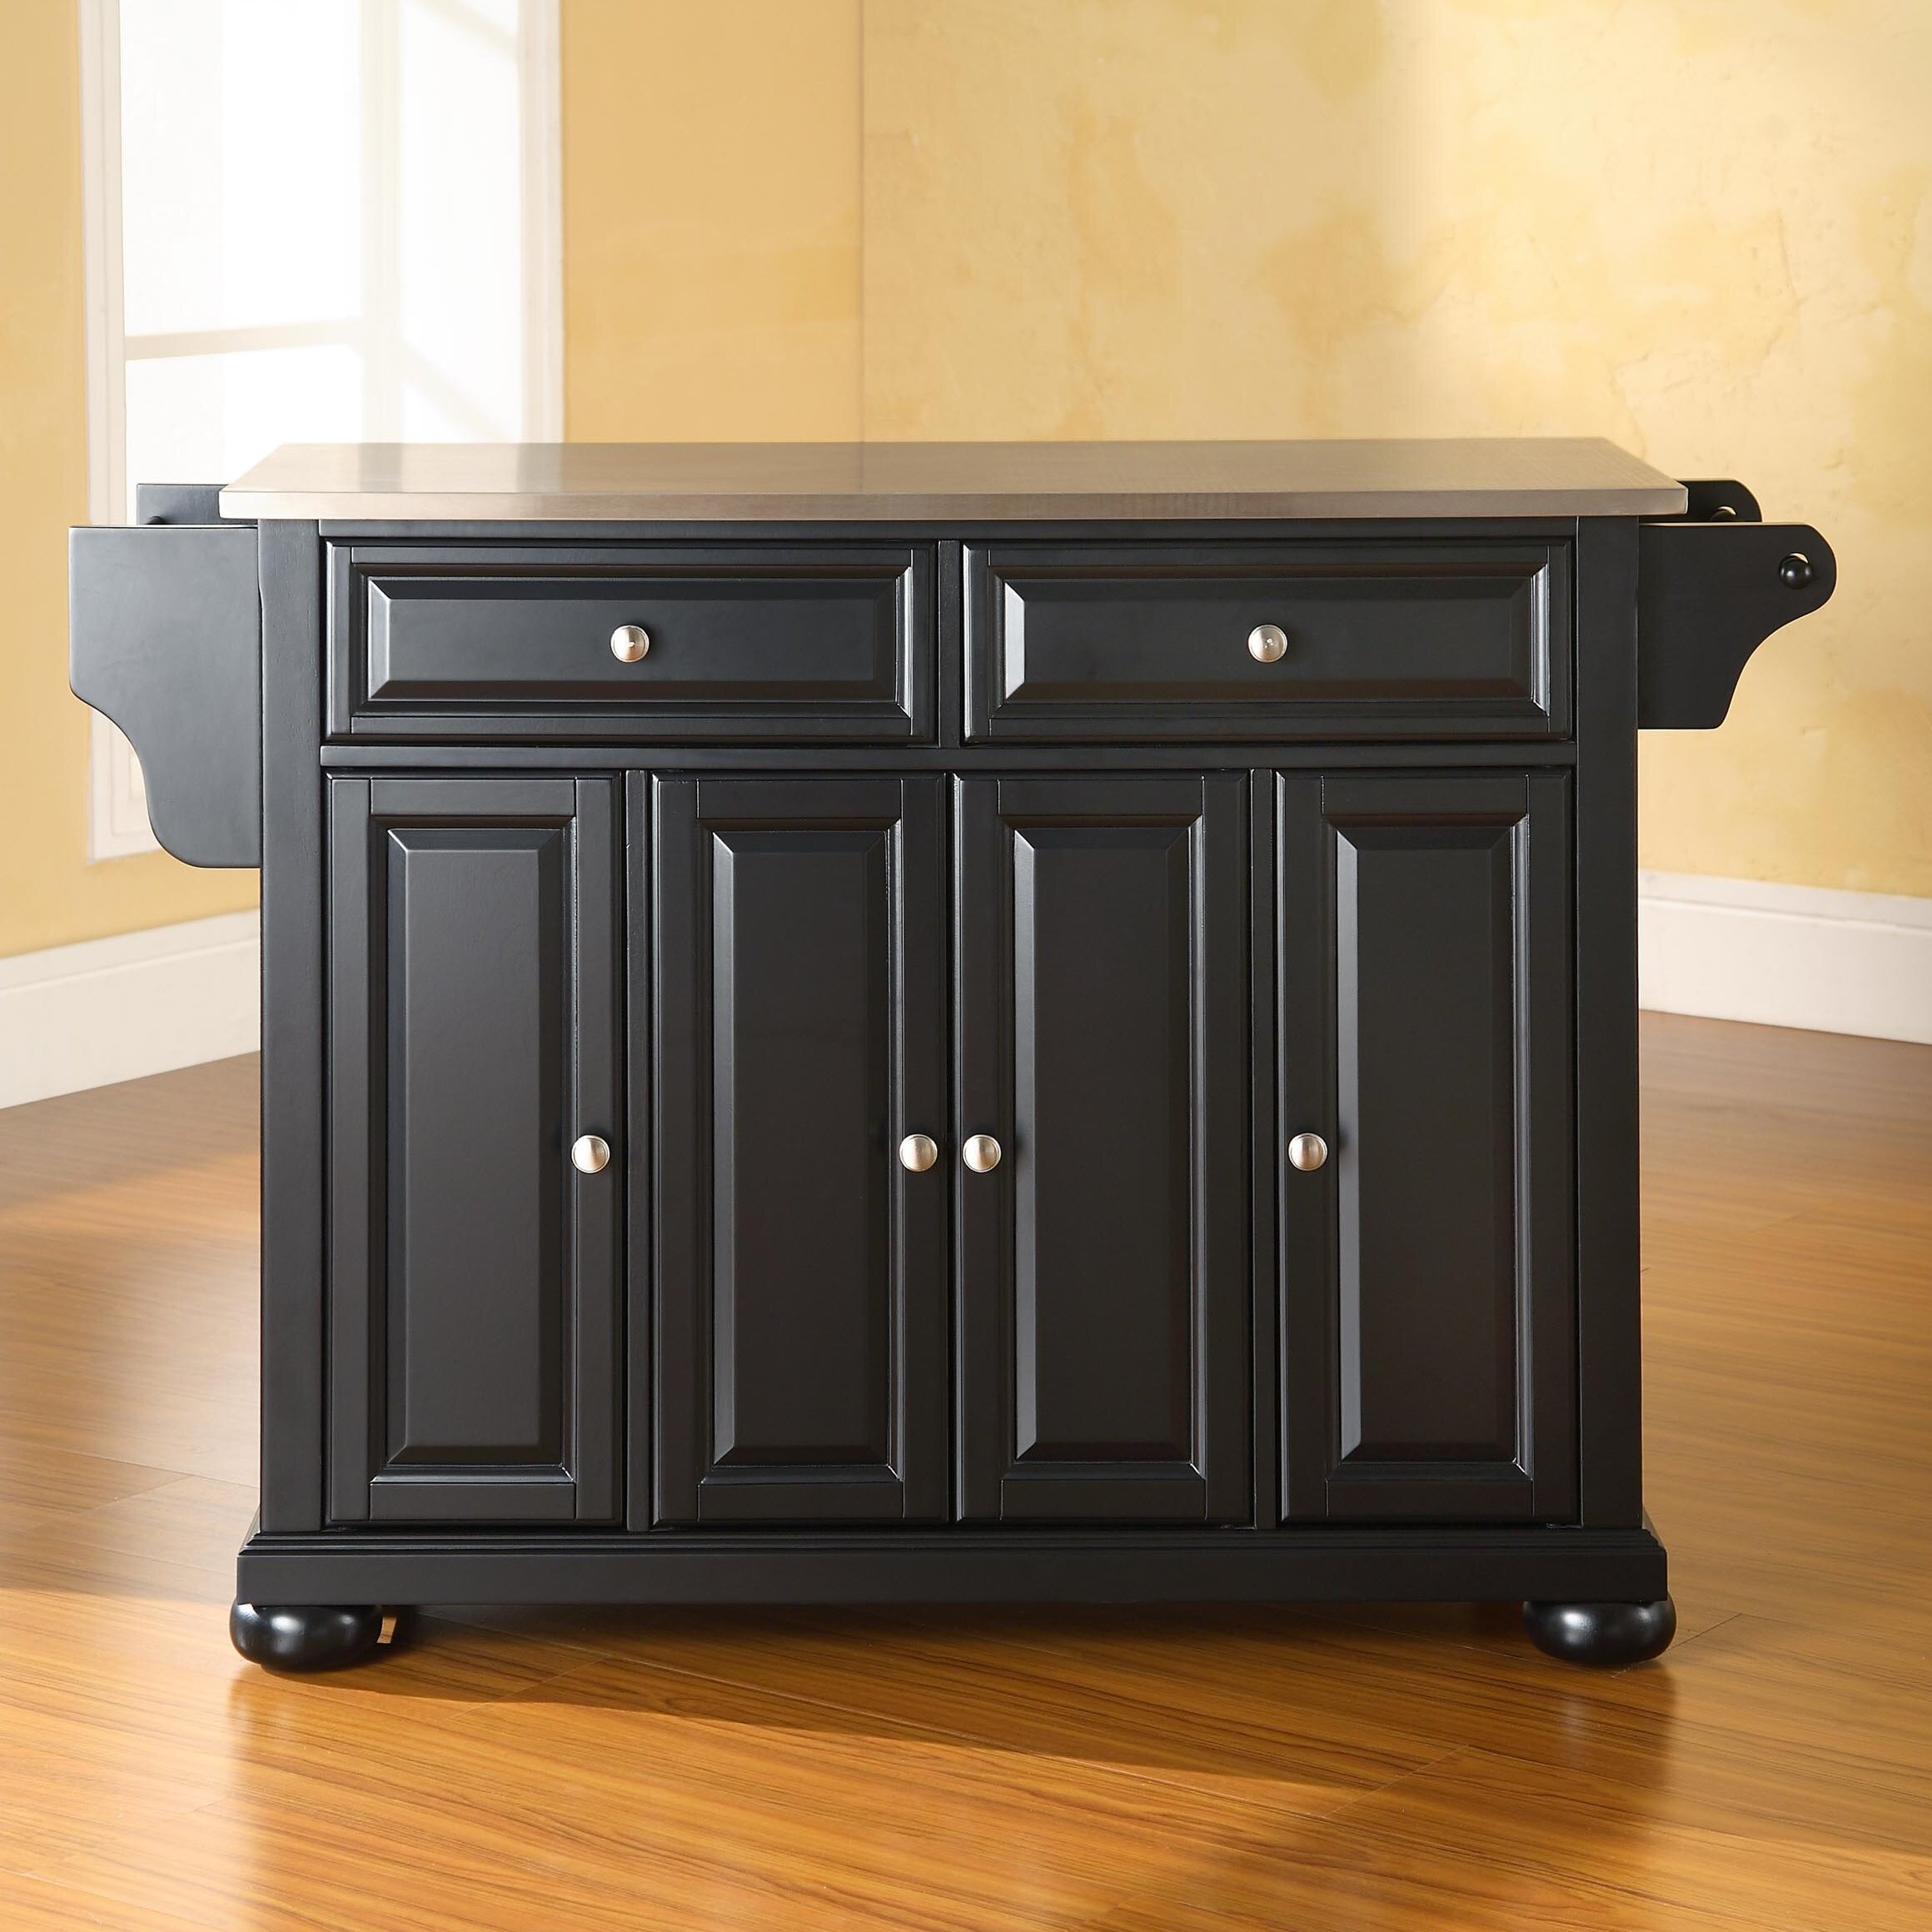 Darby Home Co Pottstown Kitchen Island with Stainless Steel Top